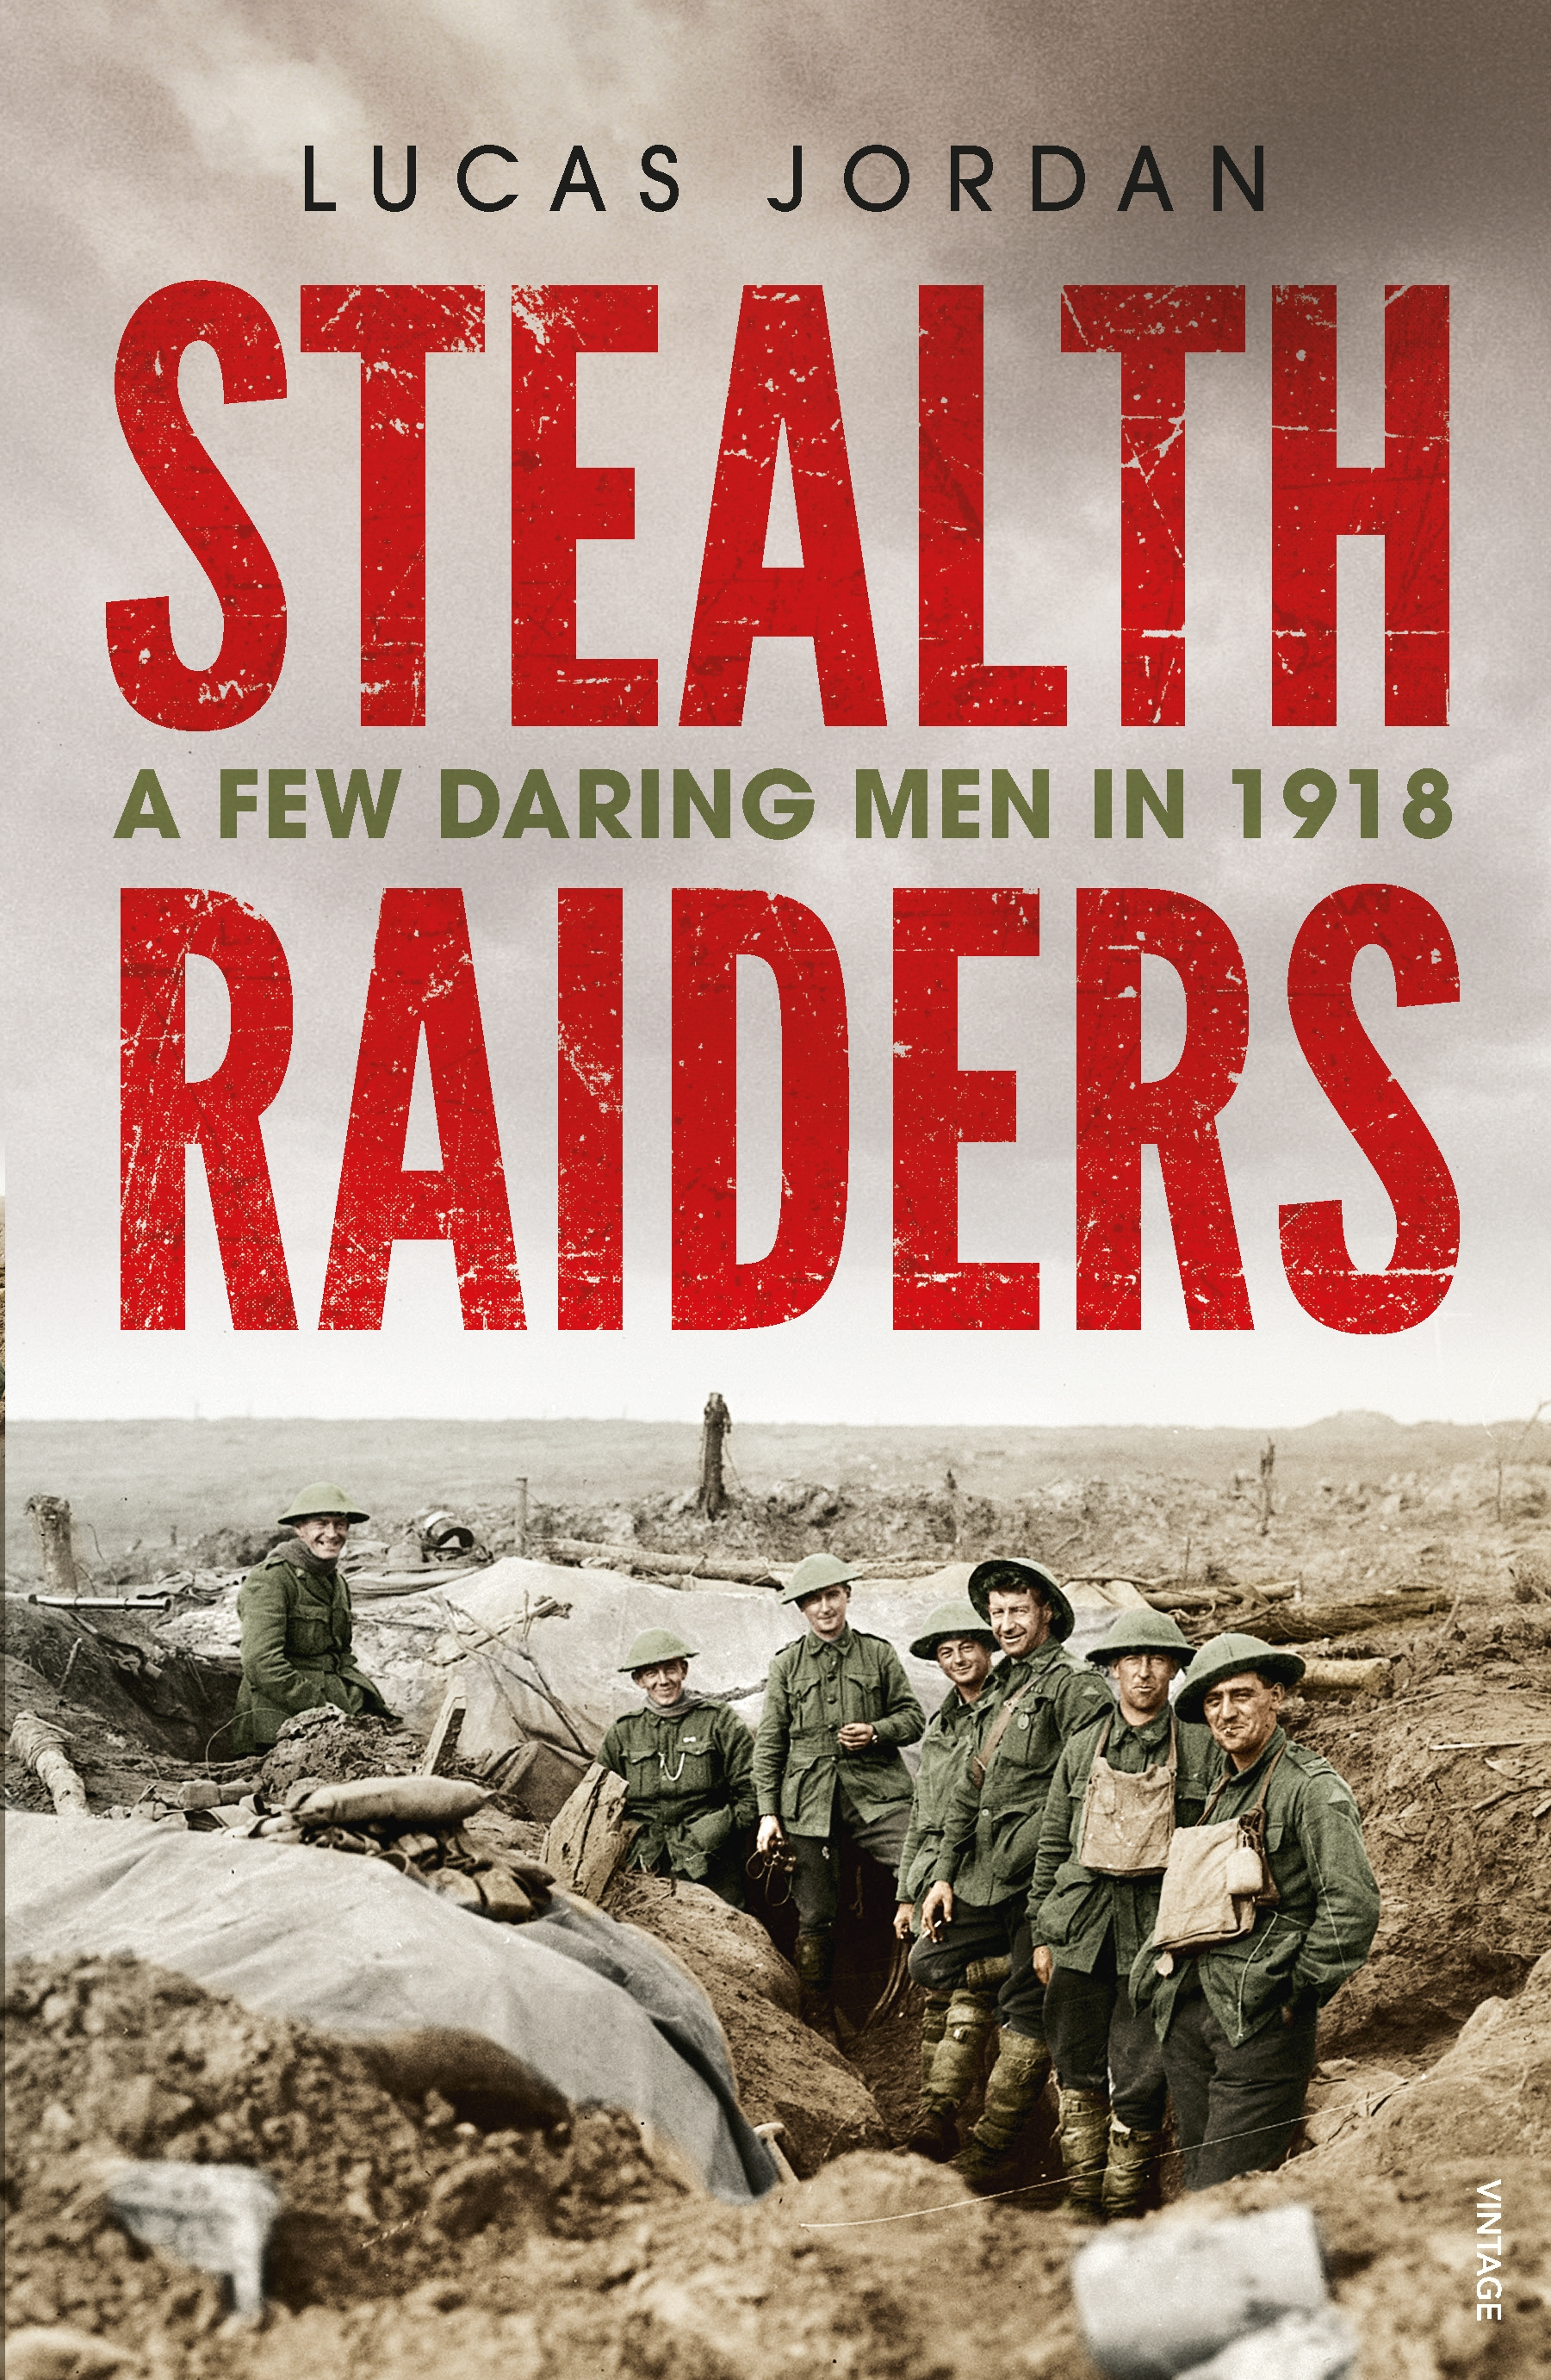 Stealth RaidersA Few Daring Men in 1918